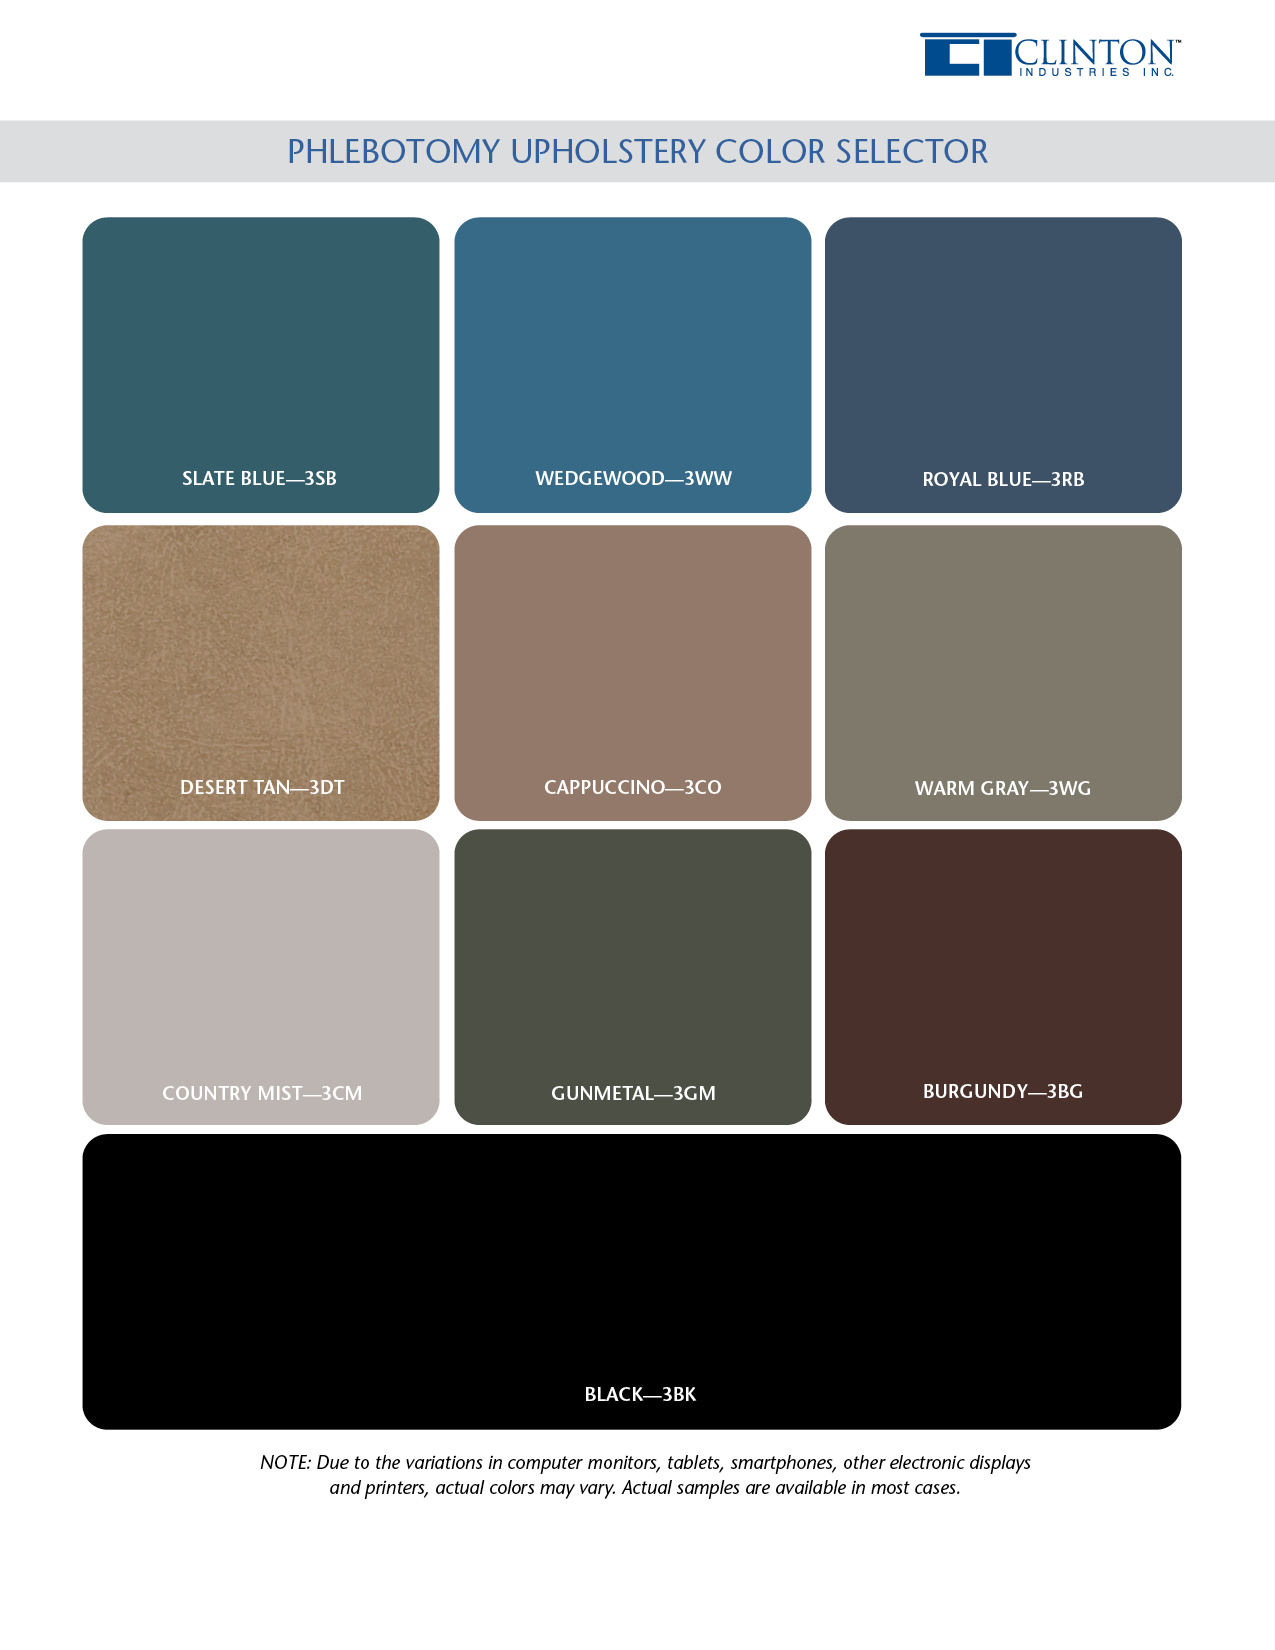 Phlebotomy Upholstery Color Chart